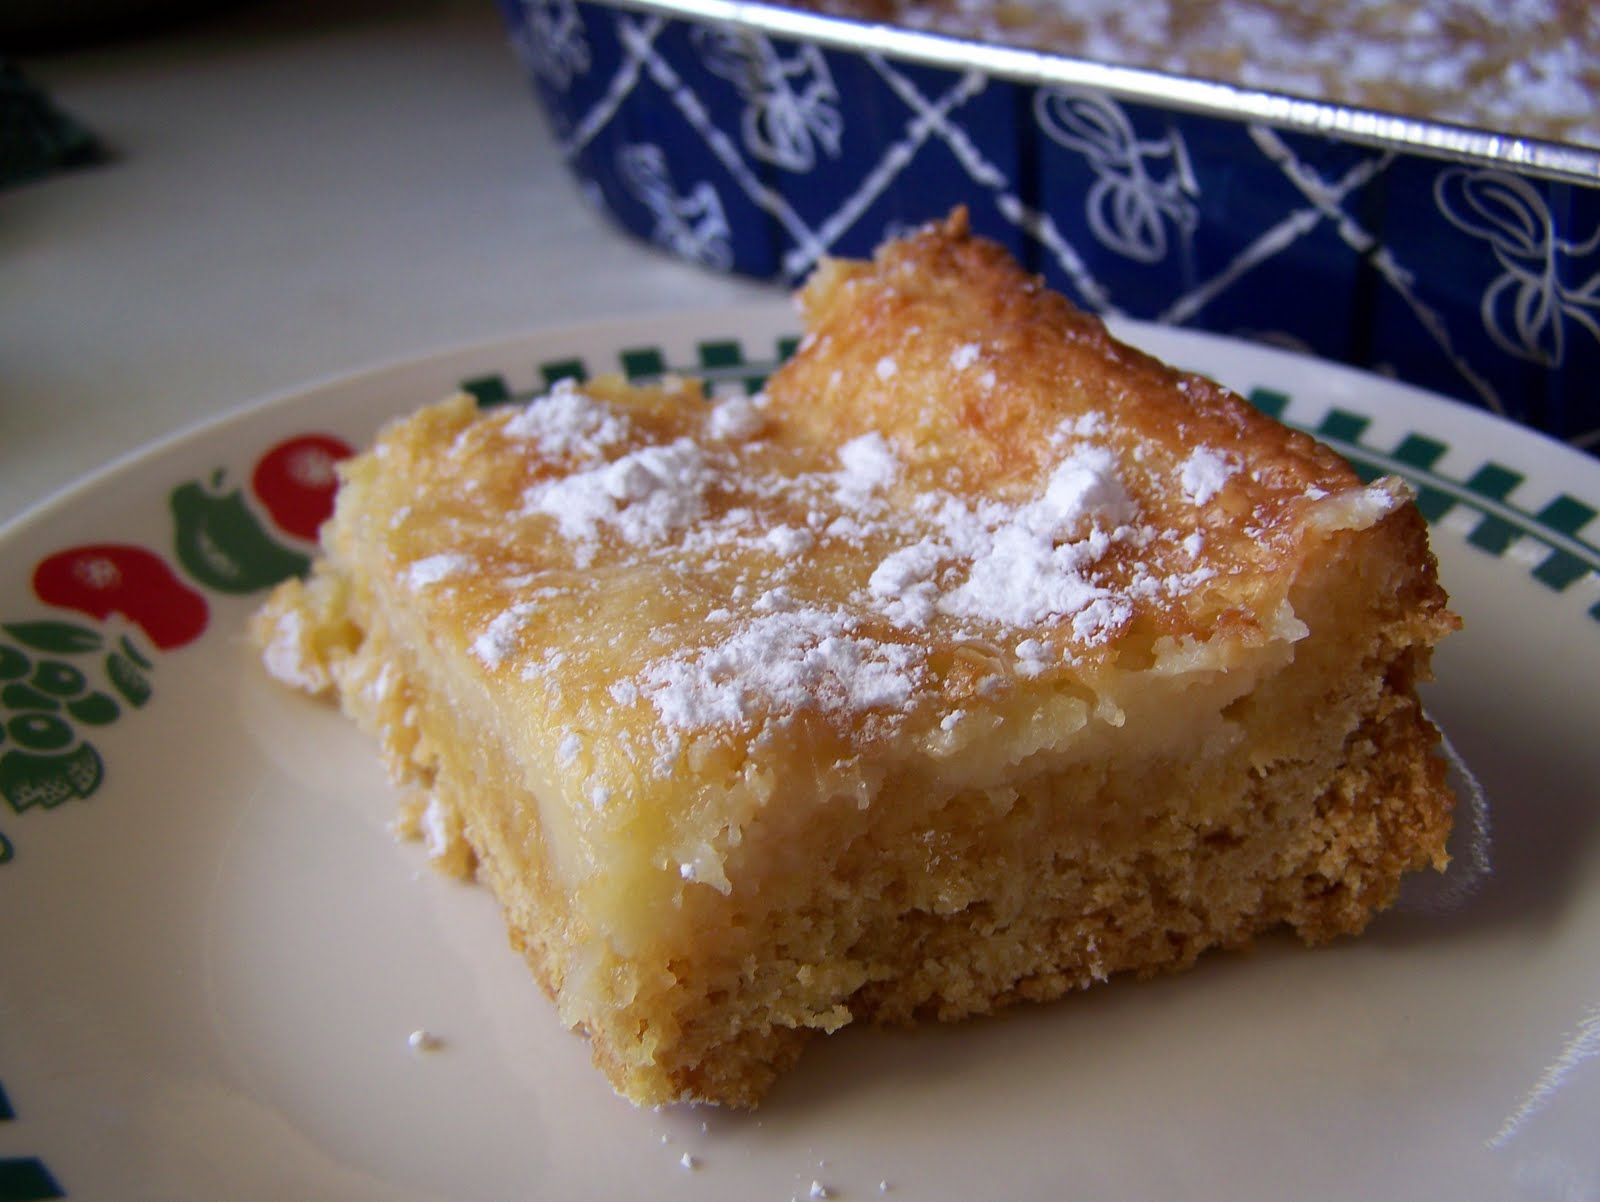 Southern living butter cake recipe